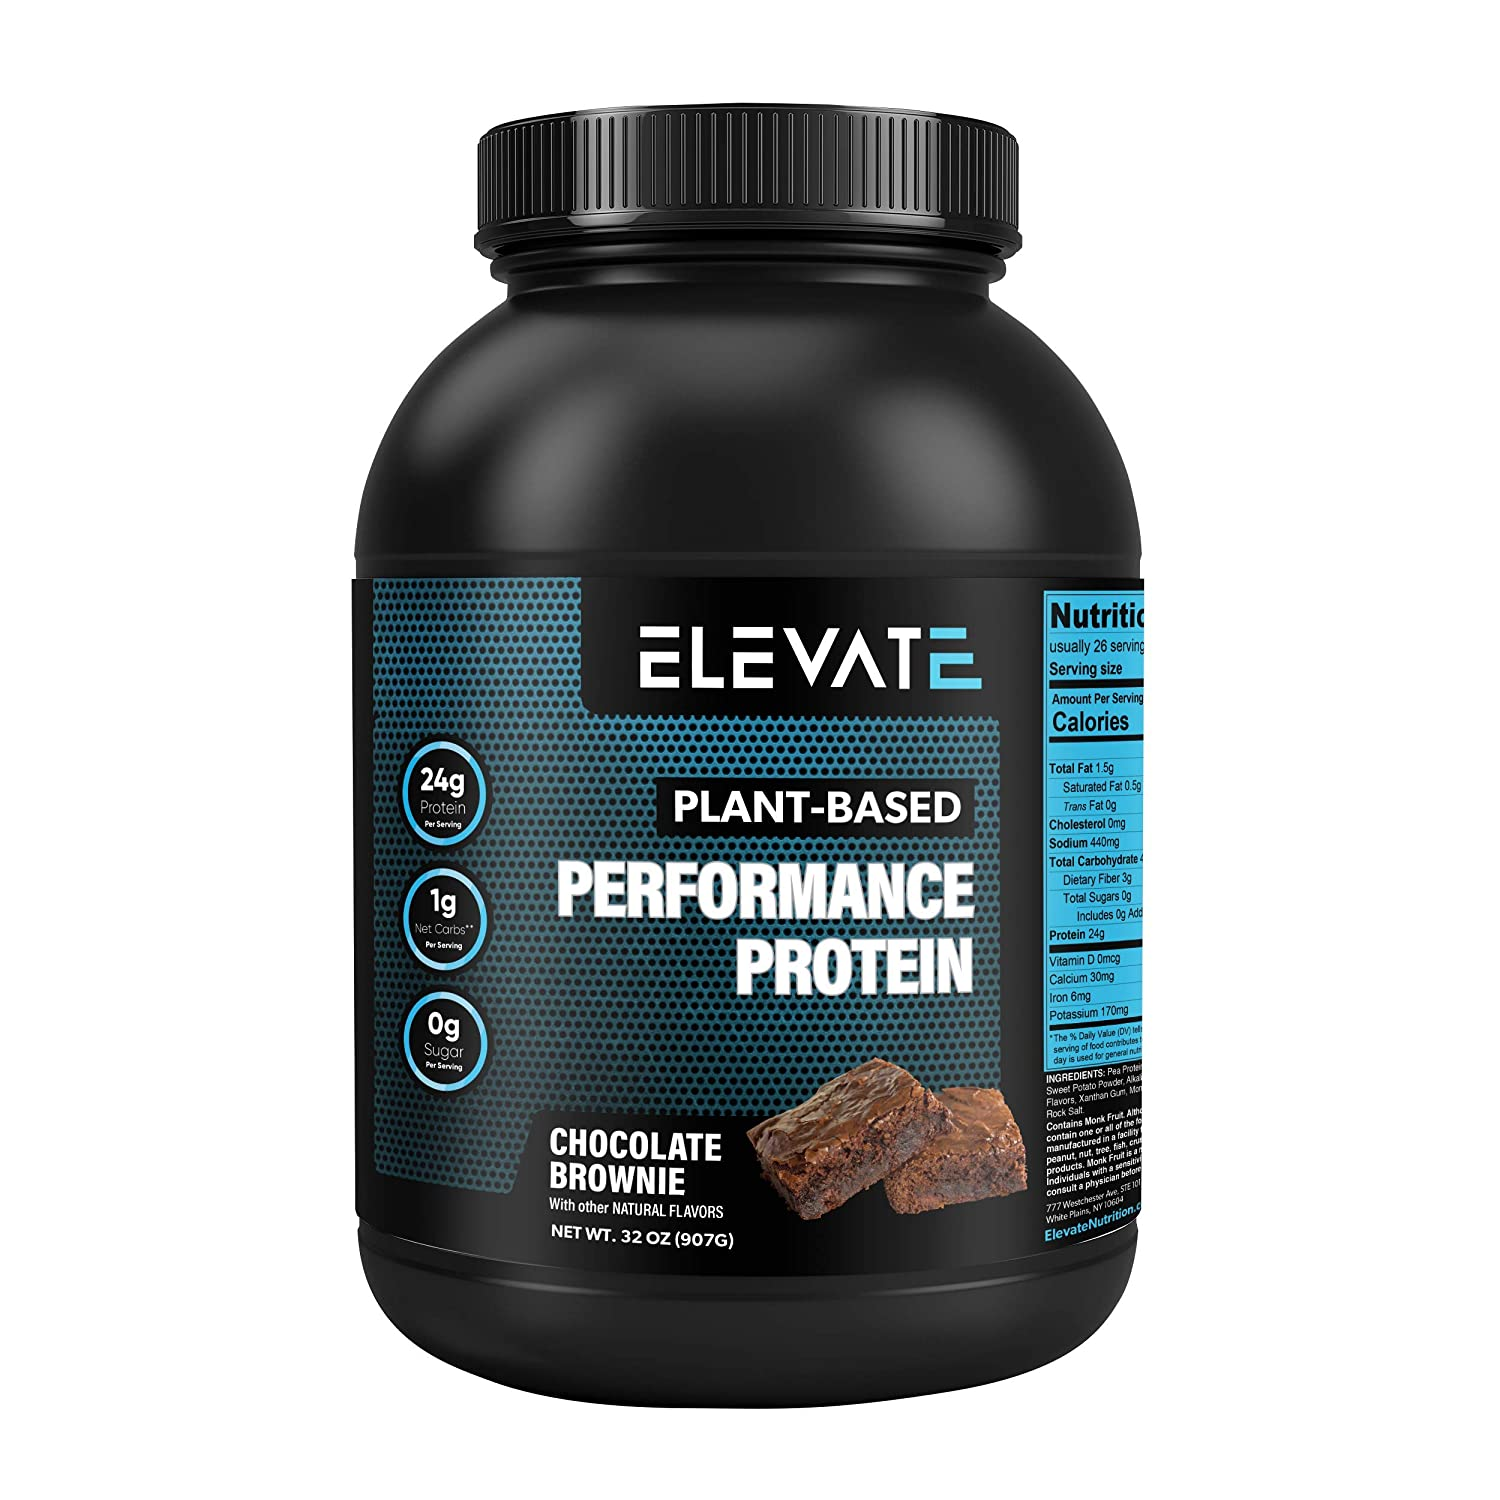 Elevate Nutrition Plant Based Vegan Performance Protein, 26 Servings, Low Carb, NO Sugar, High Protein, High BCAAs, High Glutamine, GMO-Free, Dairy and Soy Free, NO Artificial Chocolate Brownie